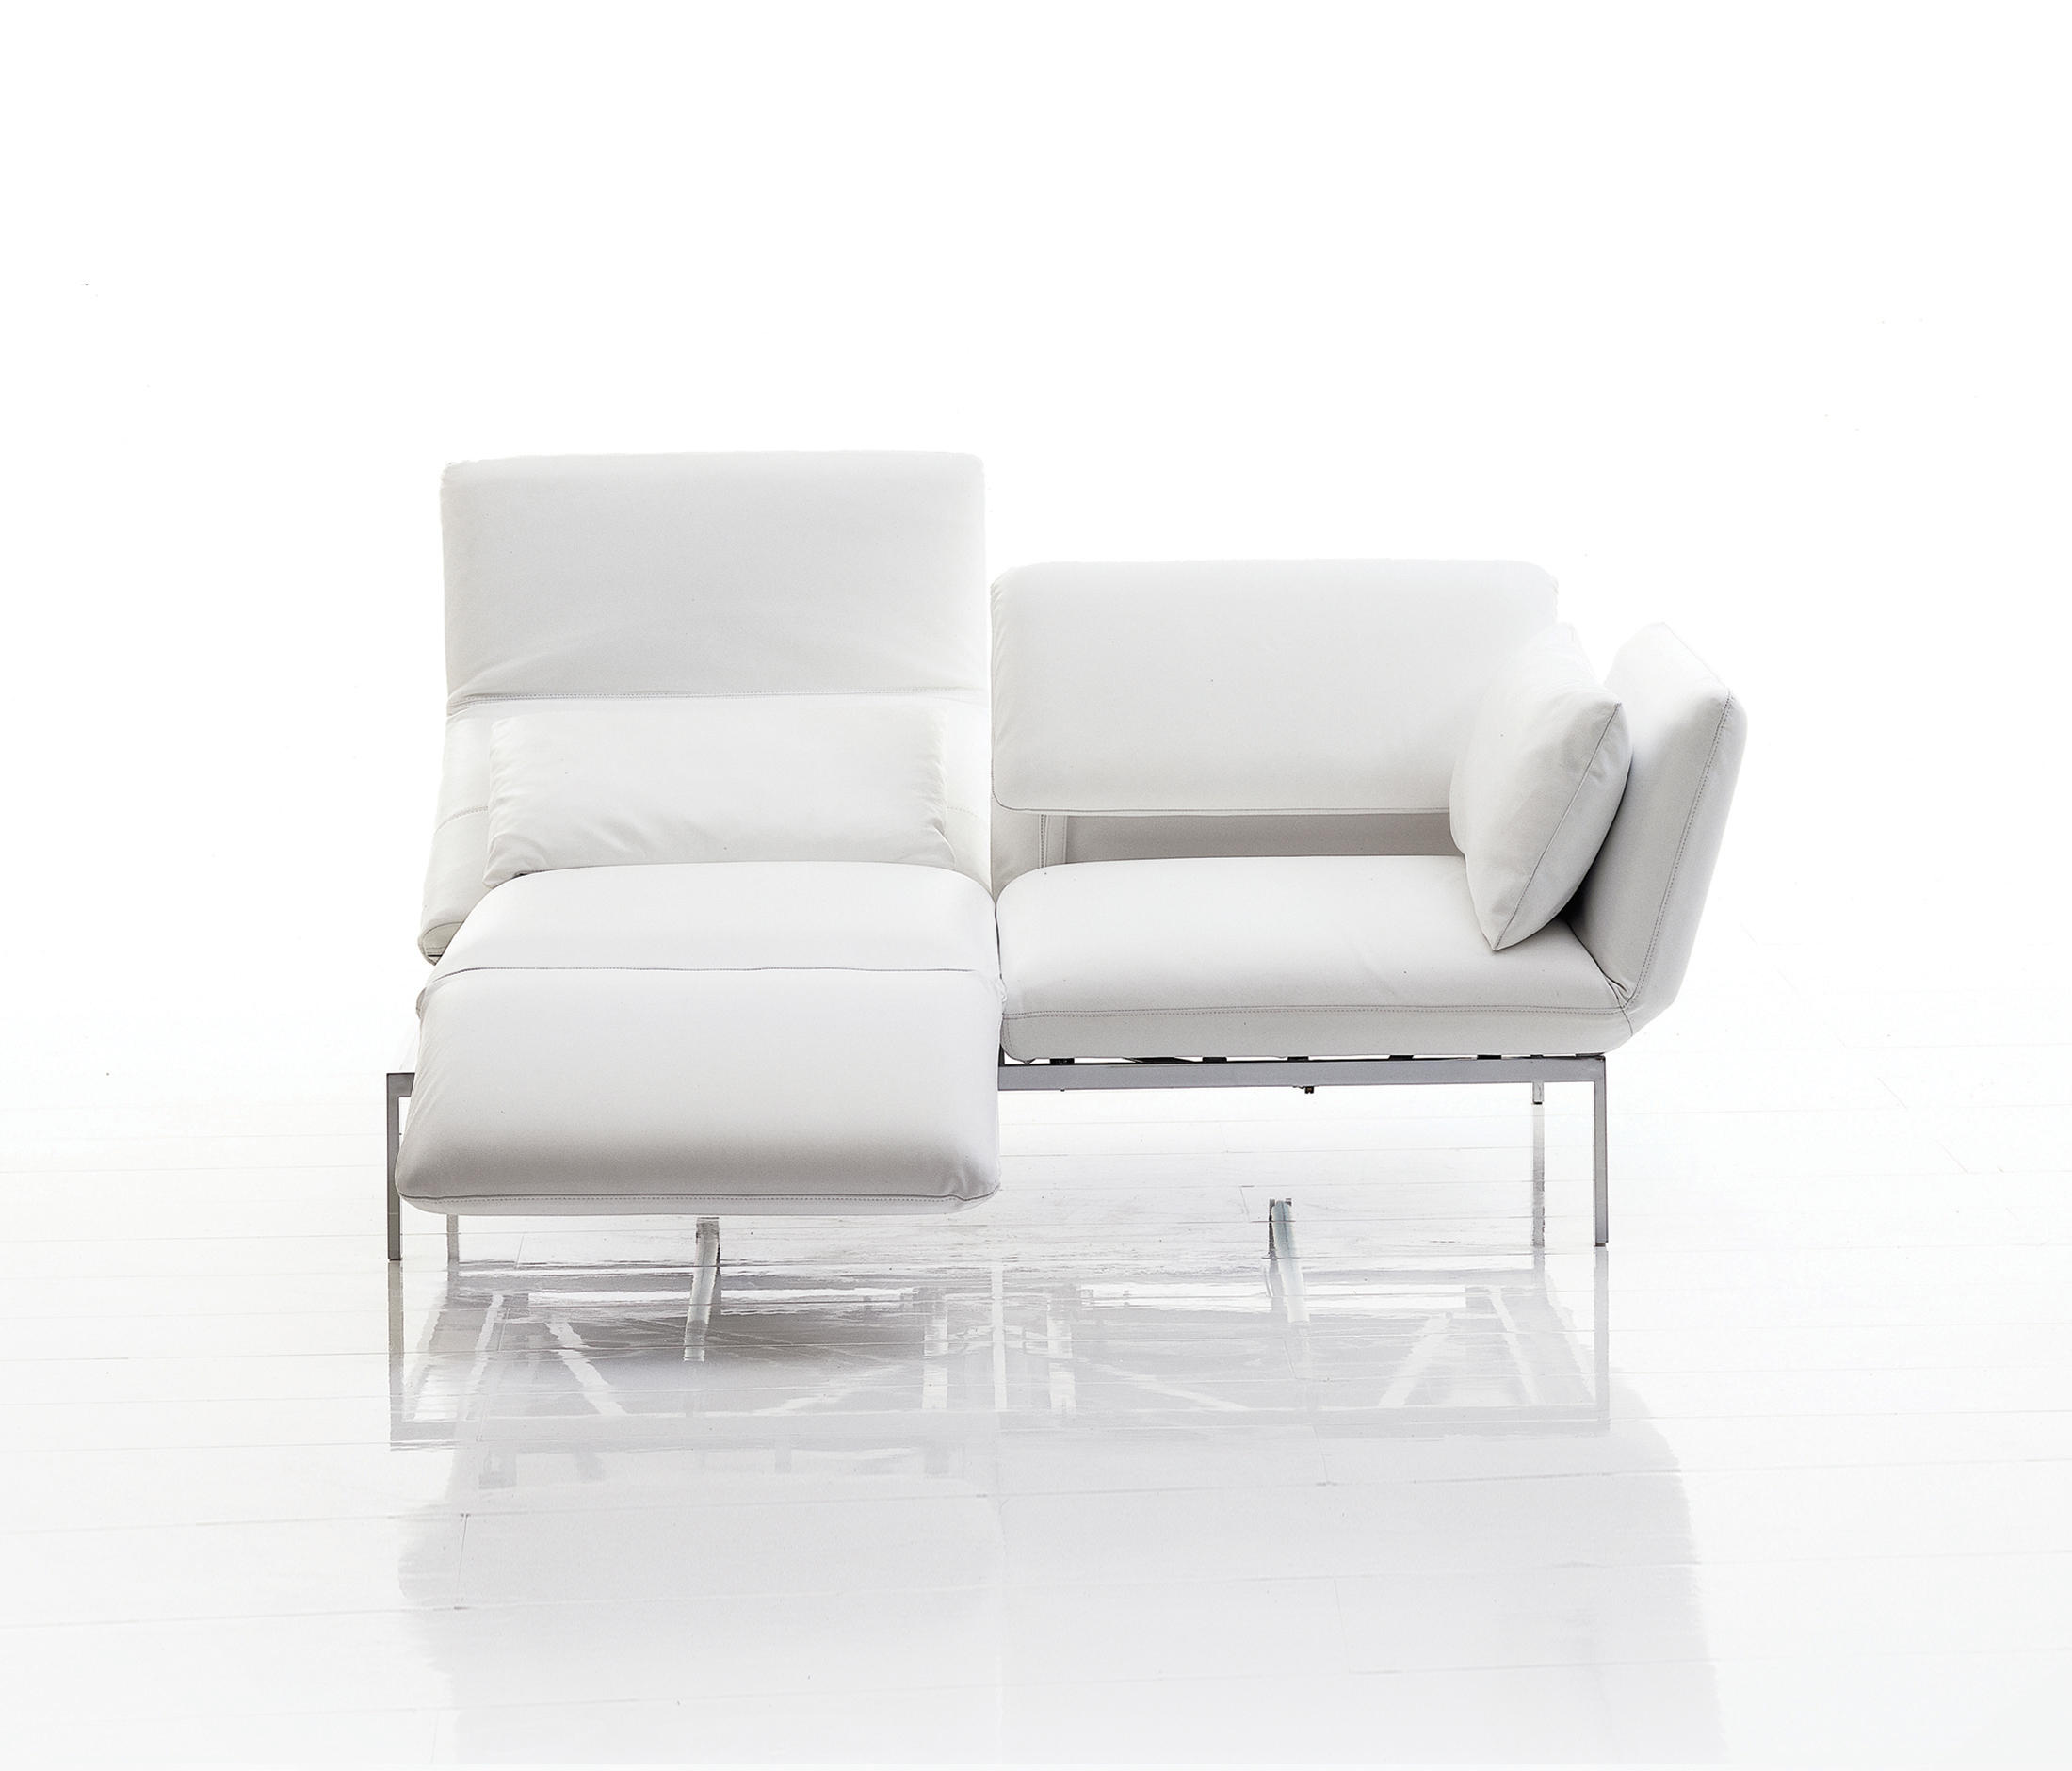 Schlafsofas Bonn Roro Medium Sofas From Brühl Architonic